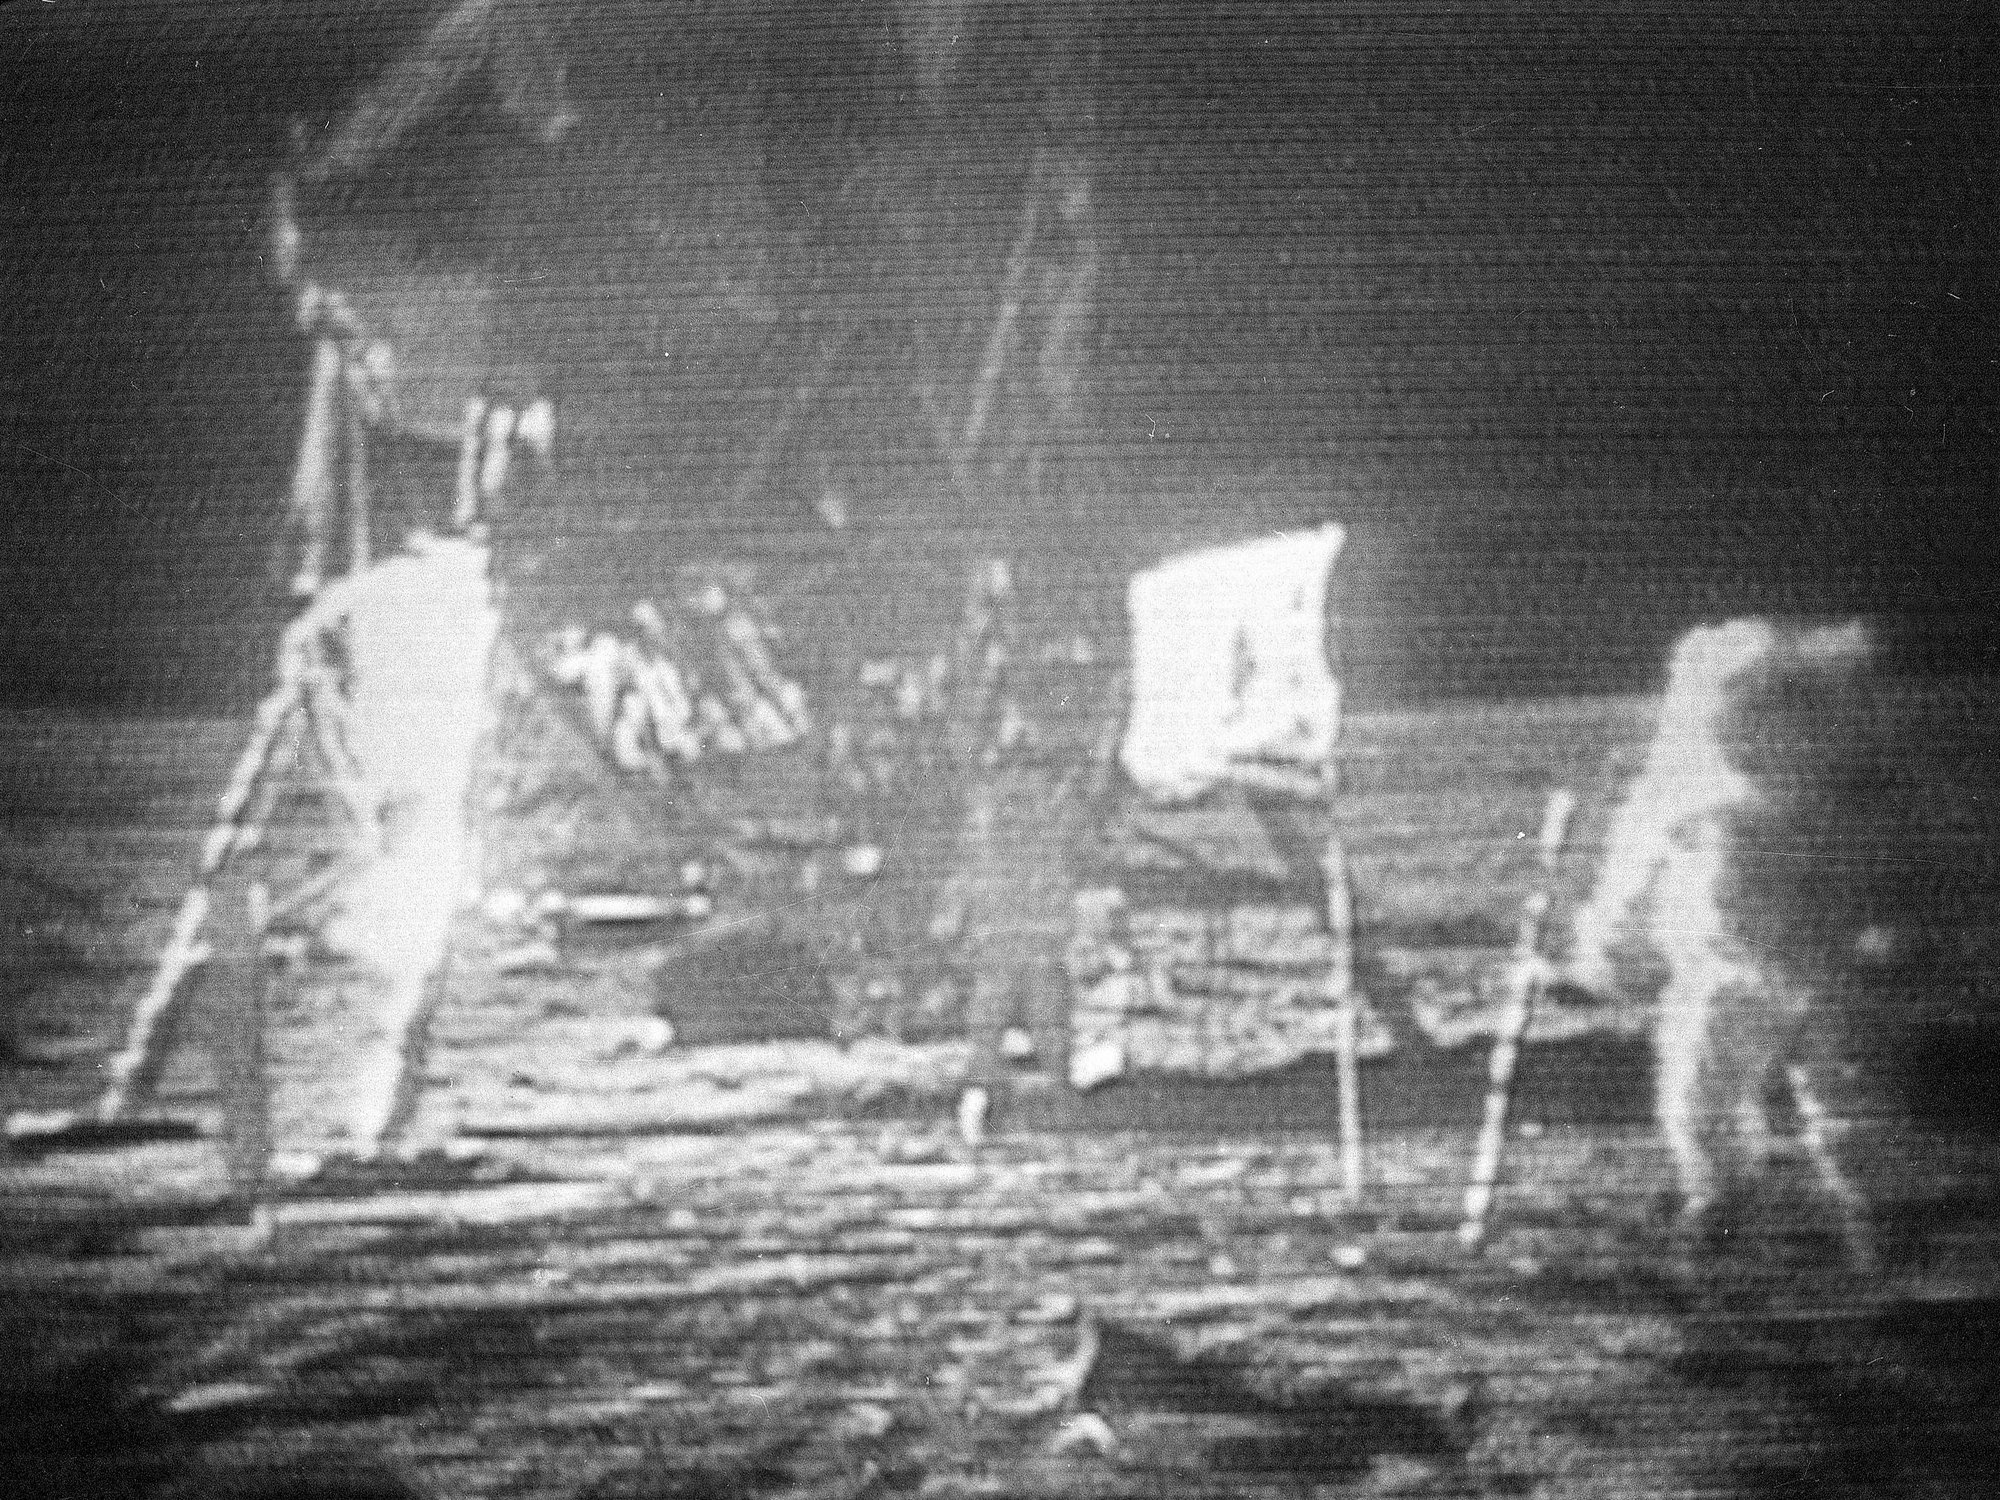 AP Was There: Man walks on the moon